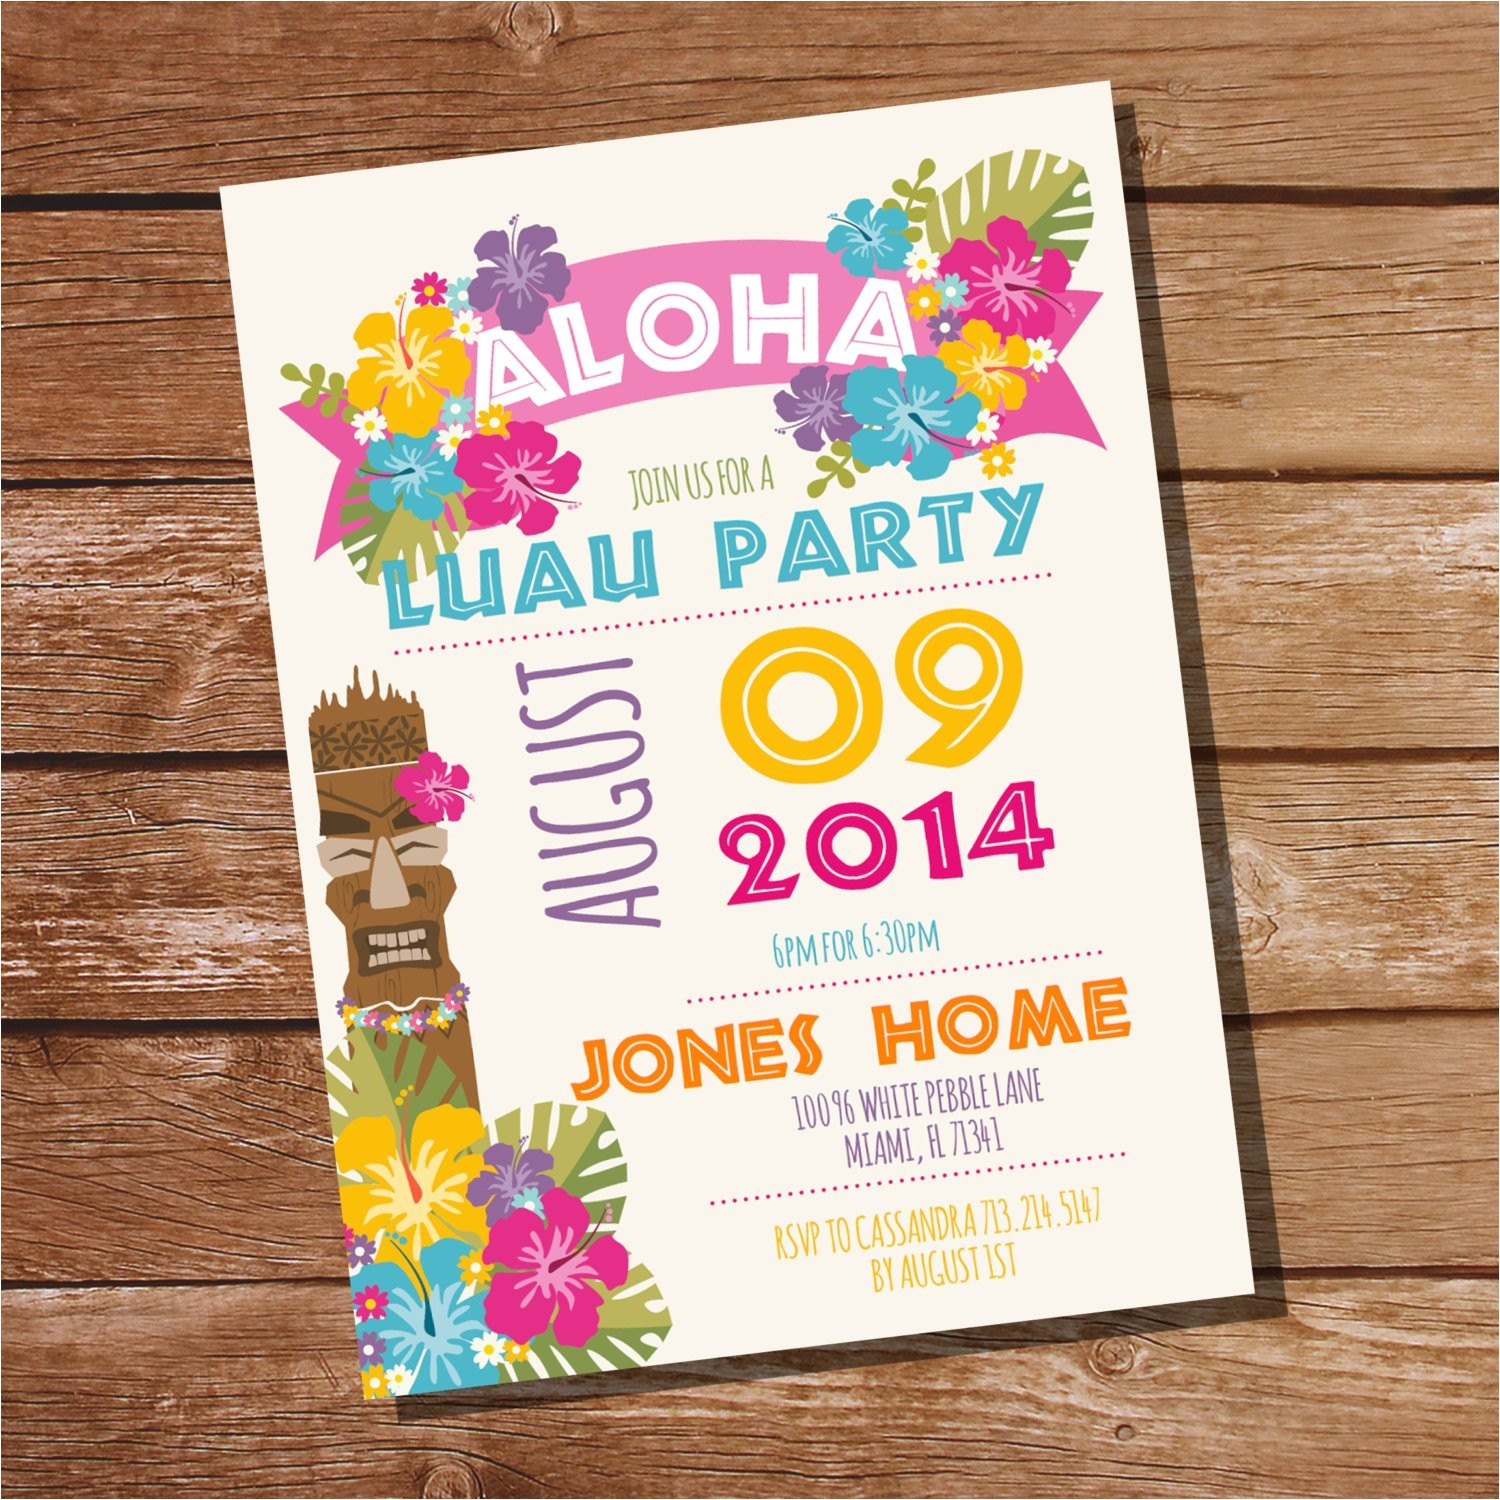 luau party invitation hawaiian party